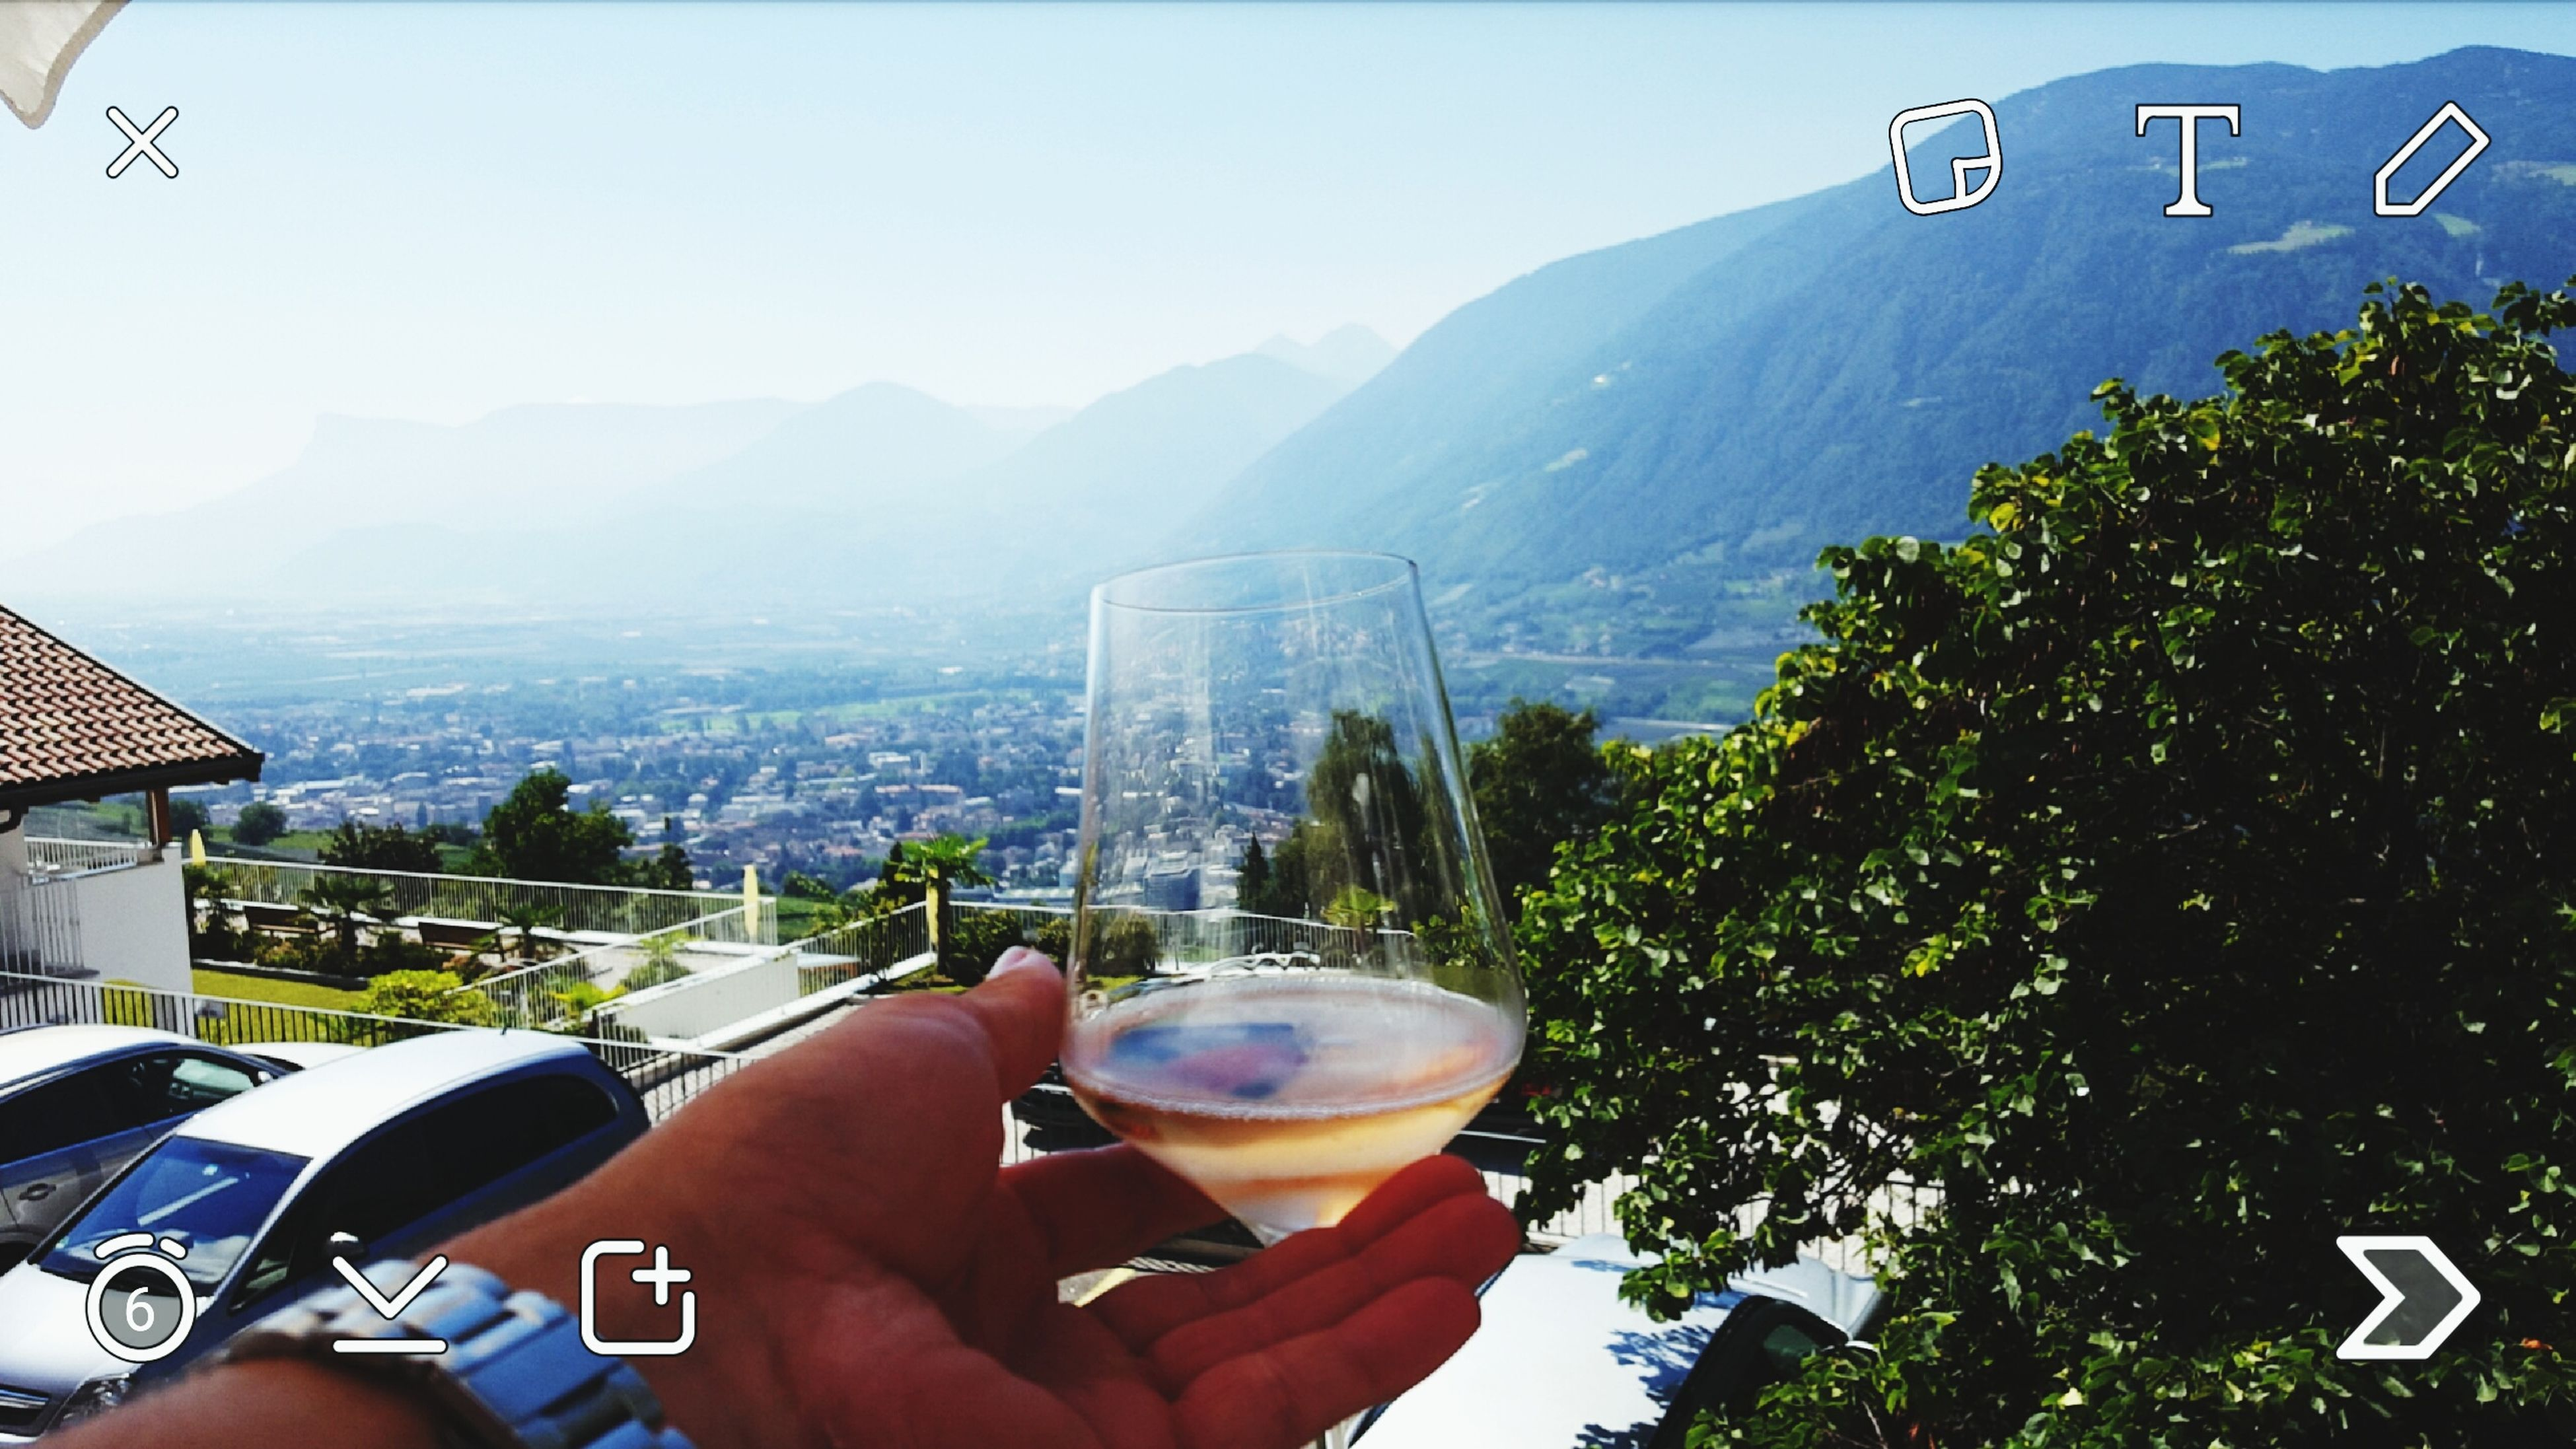 mountain, food and drink, lifestyles, leisure activity, drink, tree, part of, person, personal perspective, refreshment, mountain range, men, cropped, holding, day, unrecognizable person, freshness, clear sky